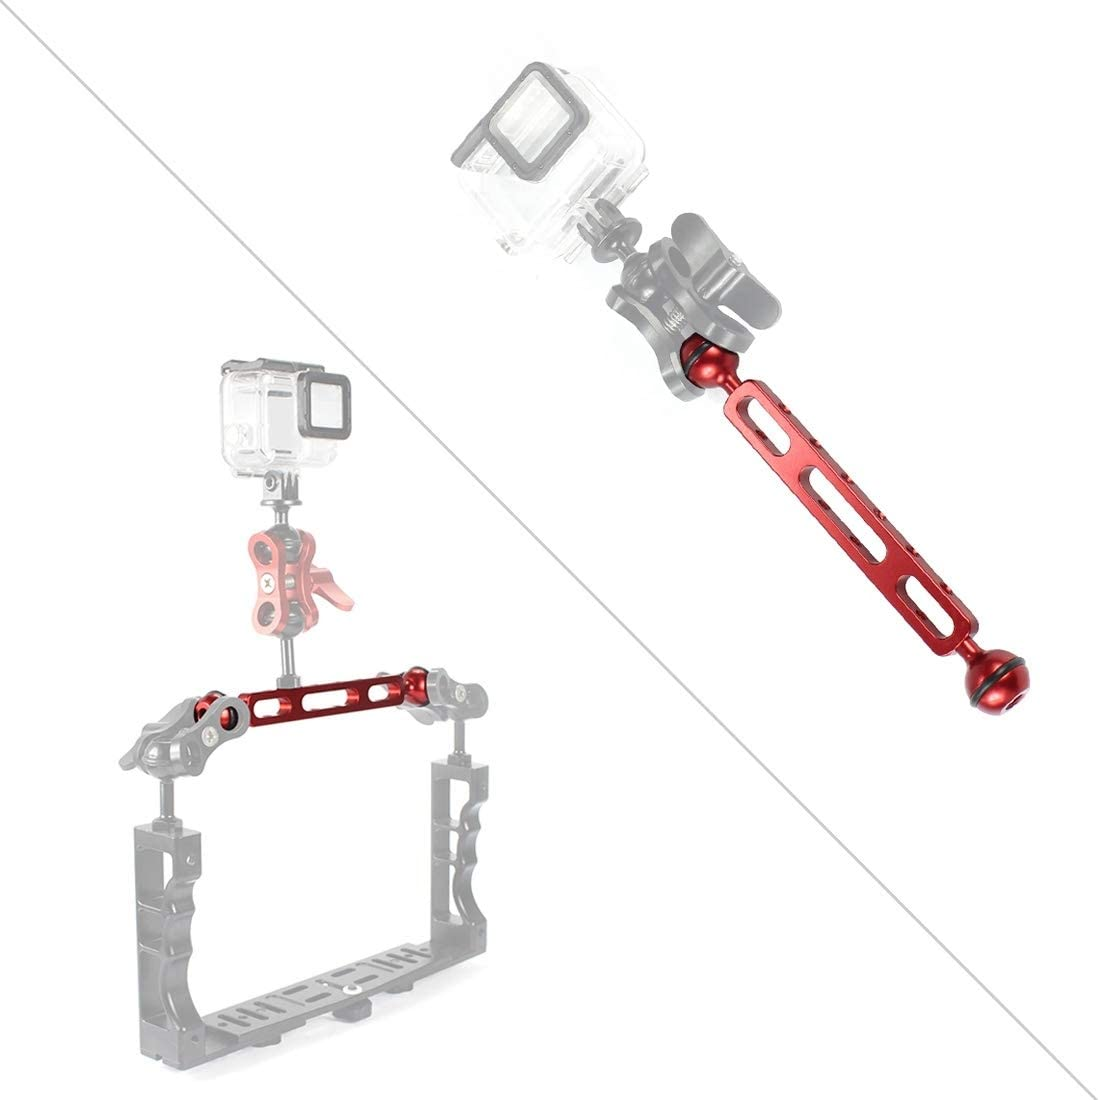 Black MEETBM ZIMO,7.87 inch 20cm Aluminum Alloy Dual Balls Arm for Underwater Torch//Video Light Ball Diameter: 2.54cm Color : Red